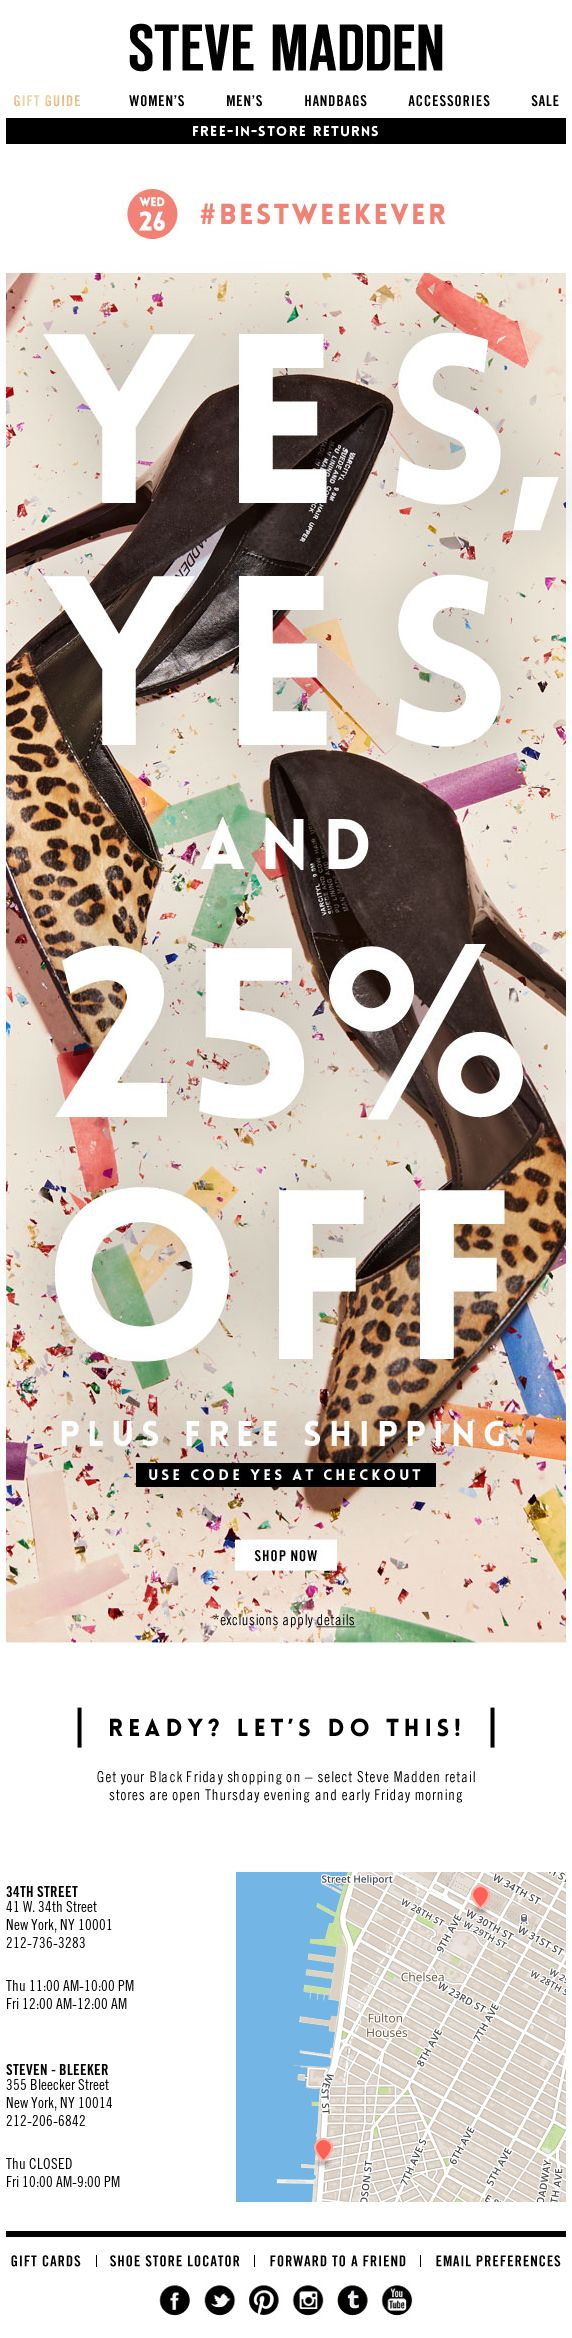 In this email, Steve Madden used a real-time geo-targeted local map to help drive subscribers to nearby store locations, just in time for Black Friday. The map also included a list of the closest store locations, along with the phone number and hours of operation for each.